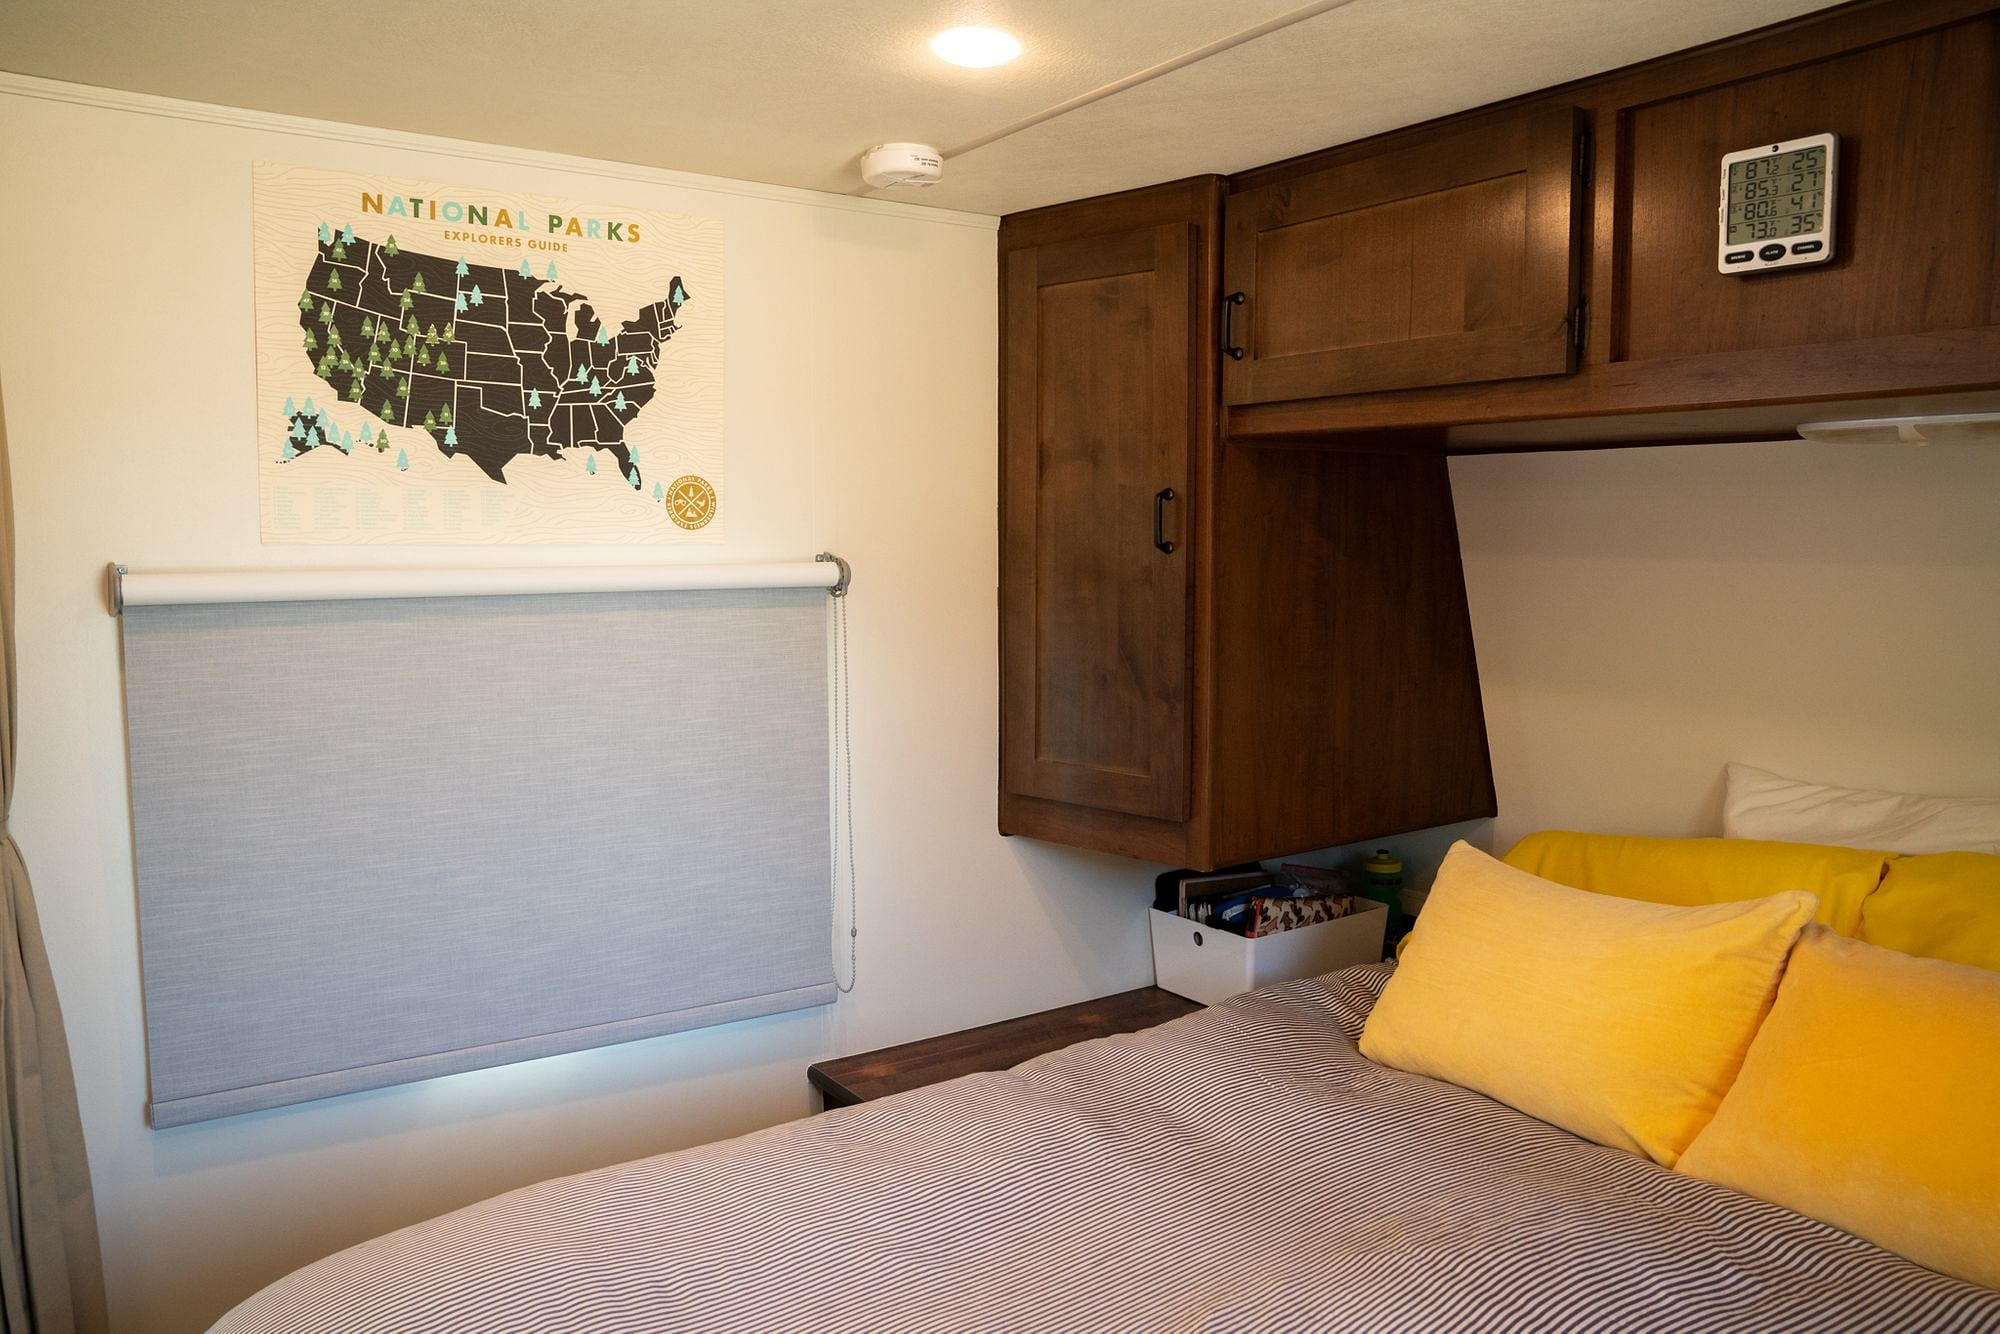 Bali Roller Shades in an RV